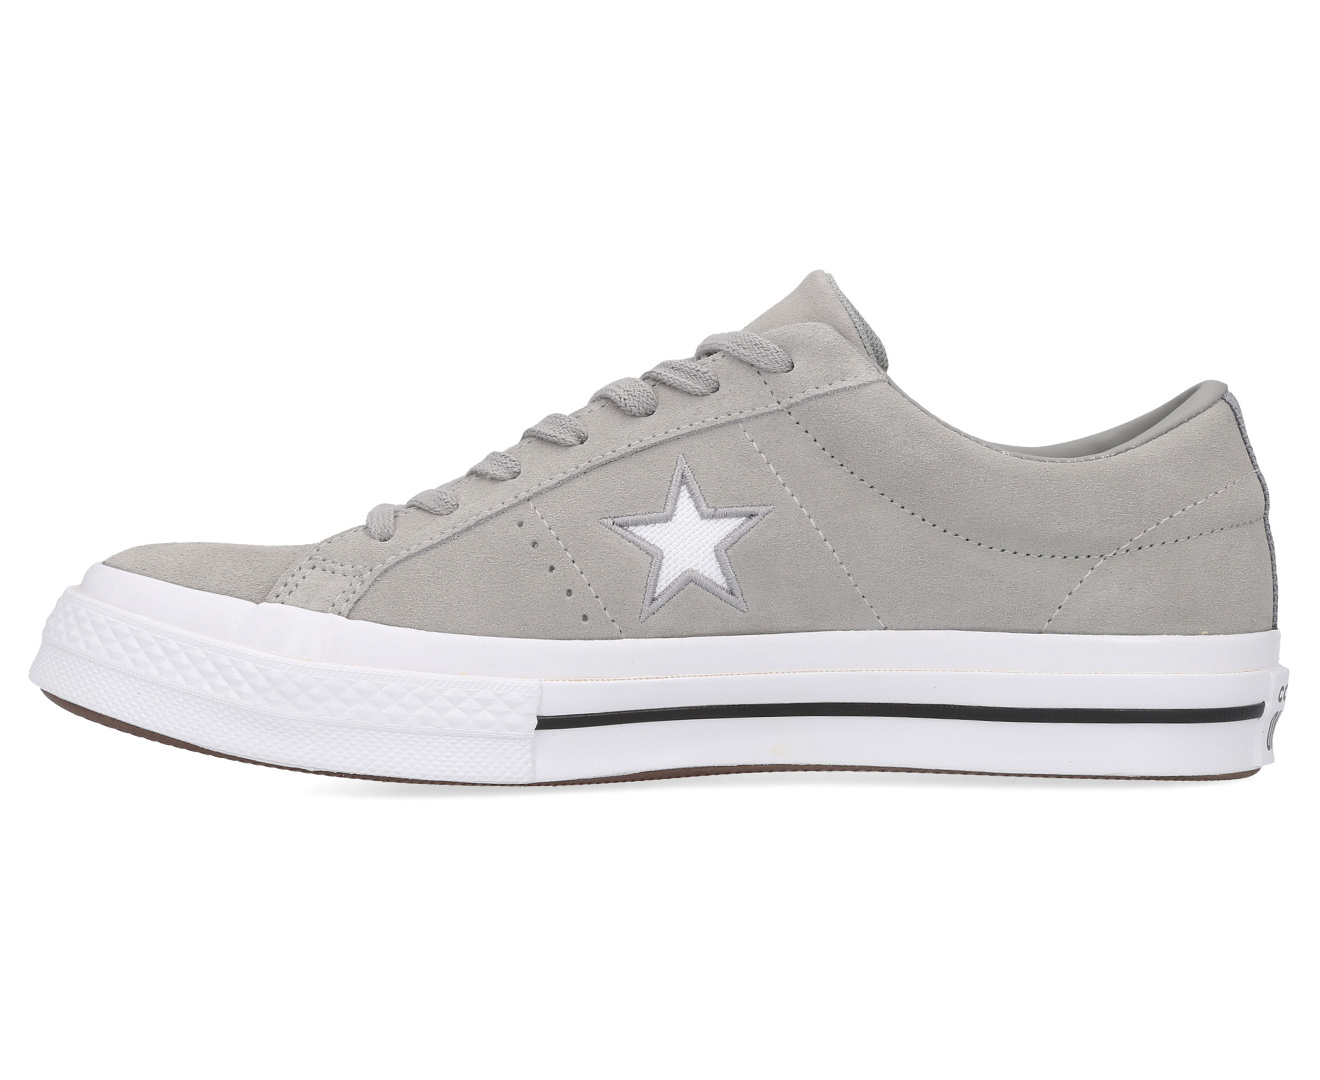 Details about Converse Men's One Star Ox Sneakers DolphinWhite